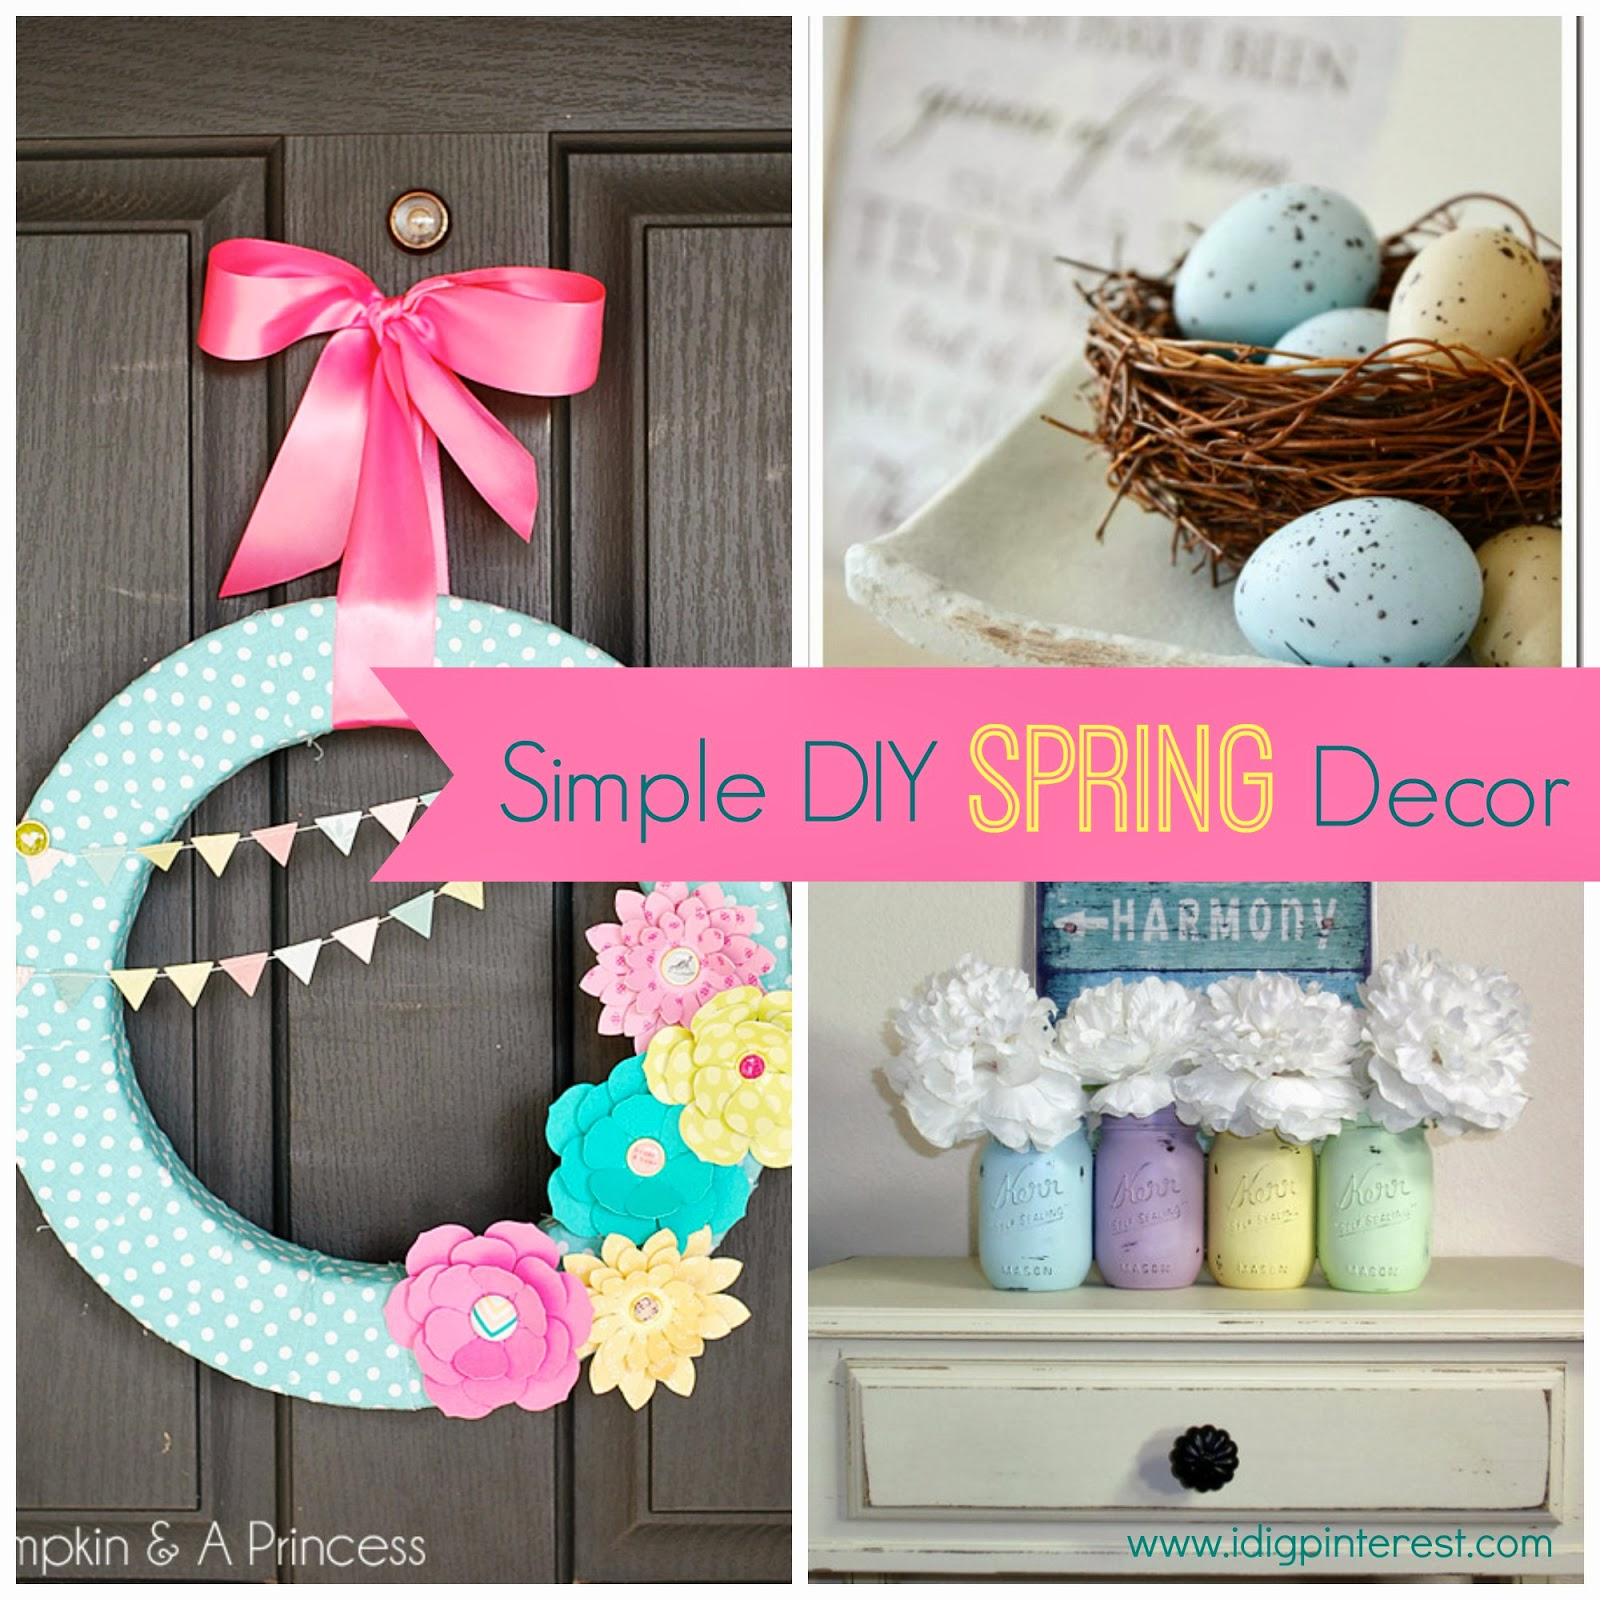 Simple diy spring decor ideas i dig pinterest for Home design ideas pinterest